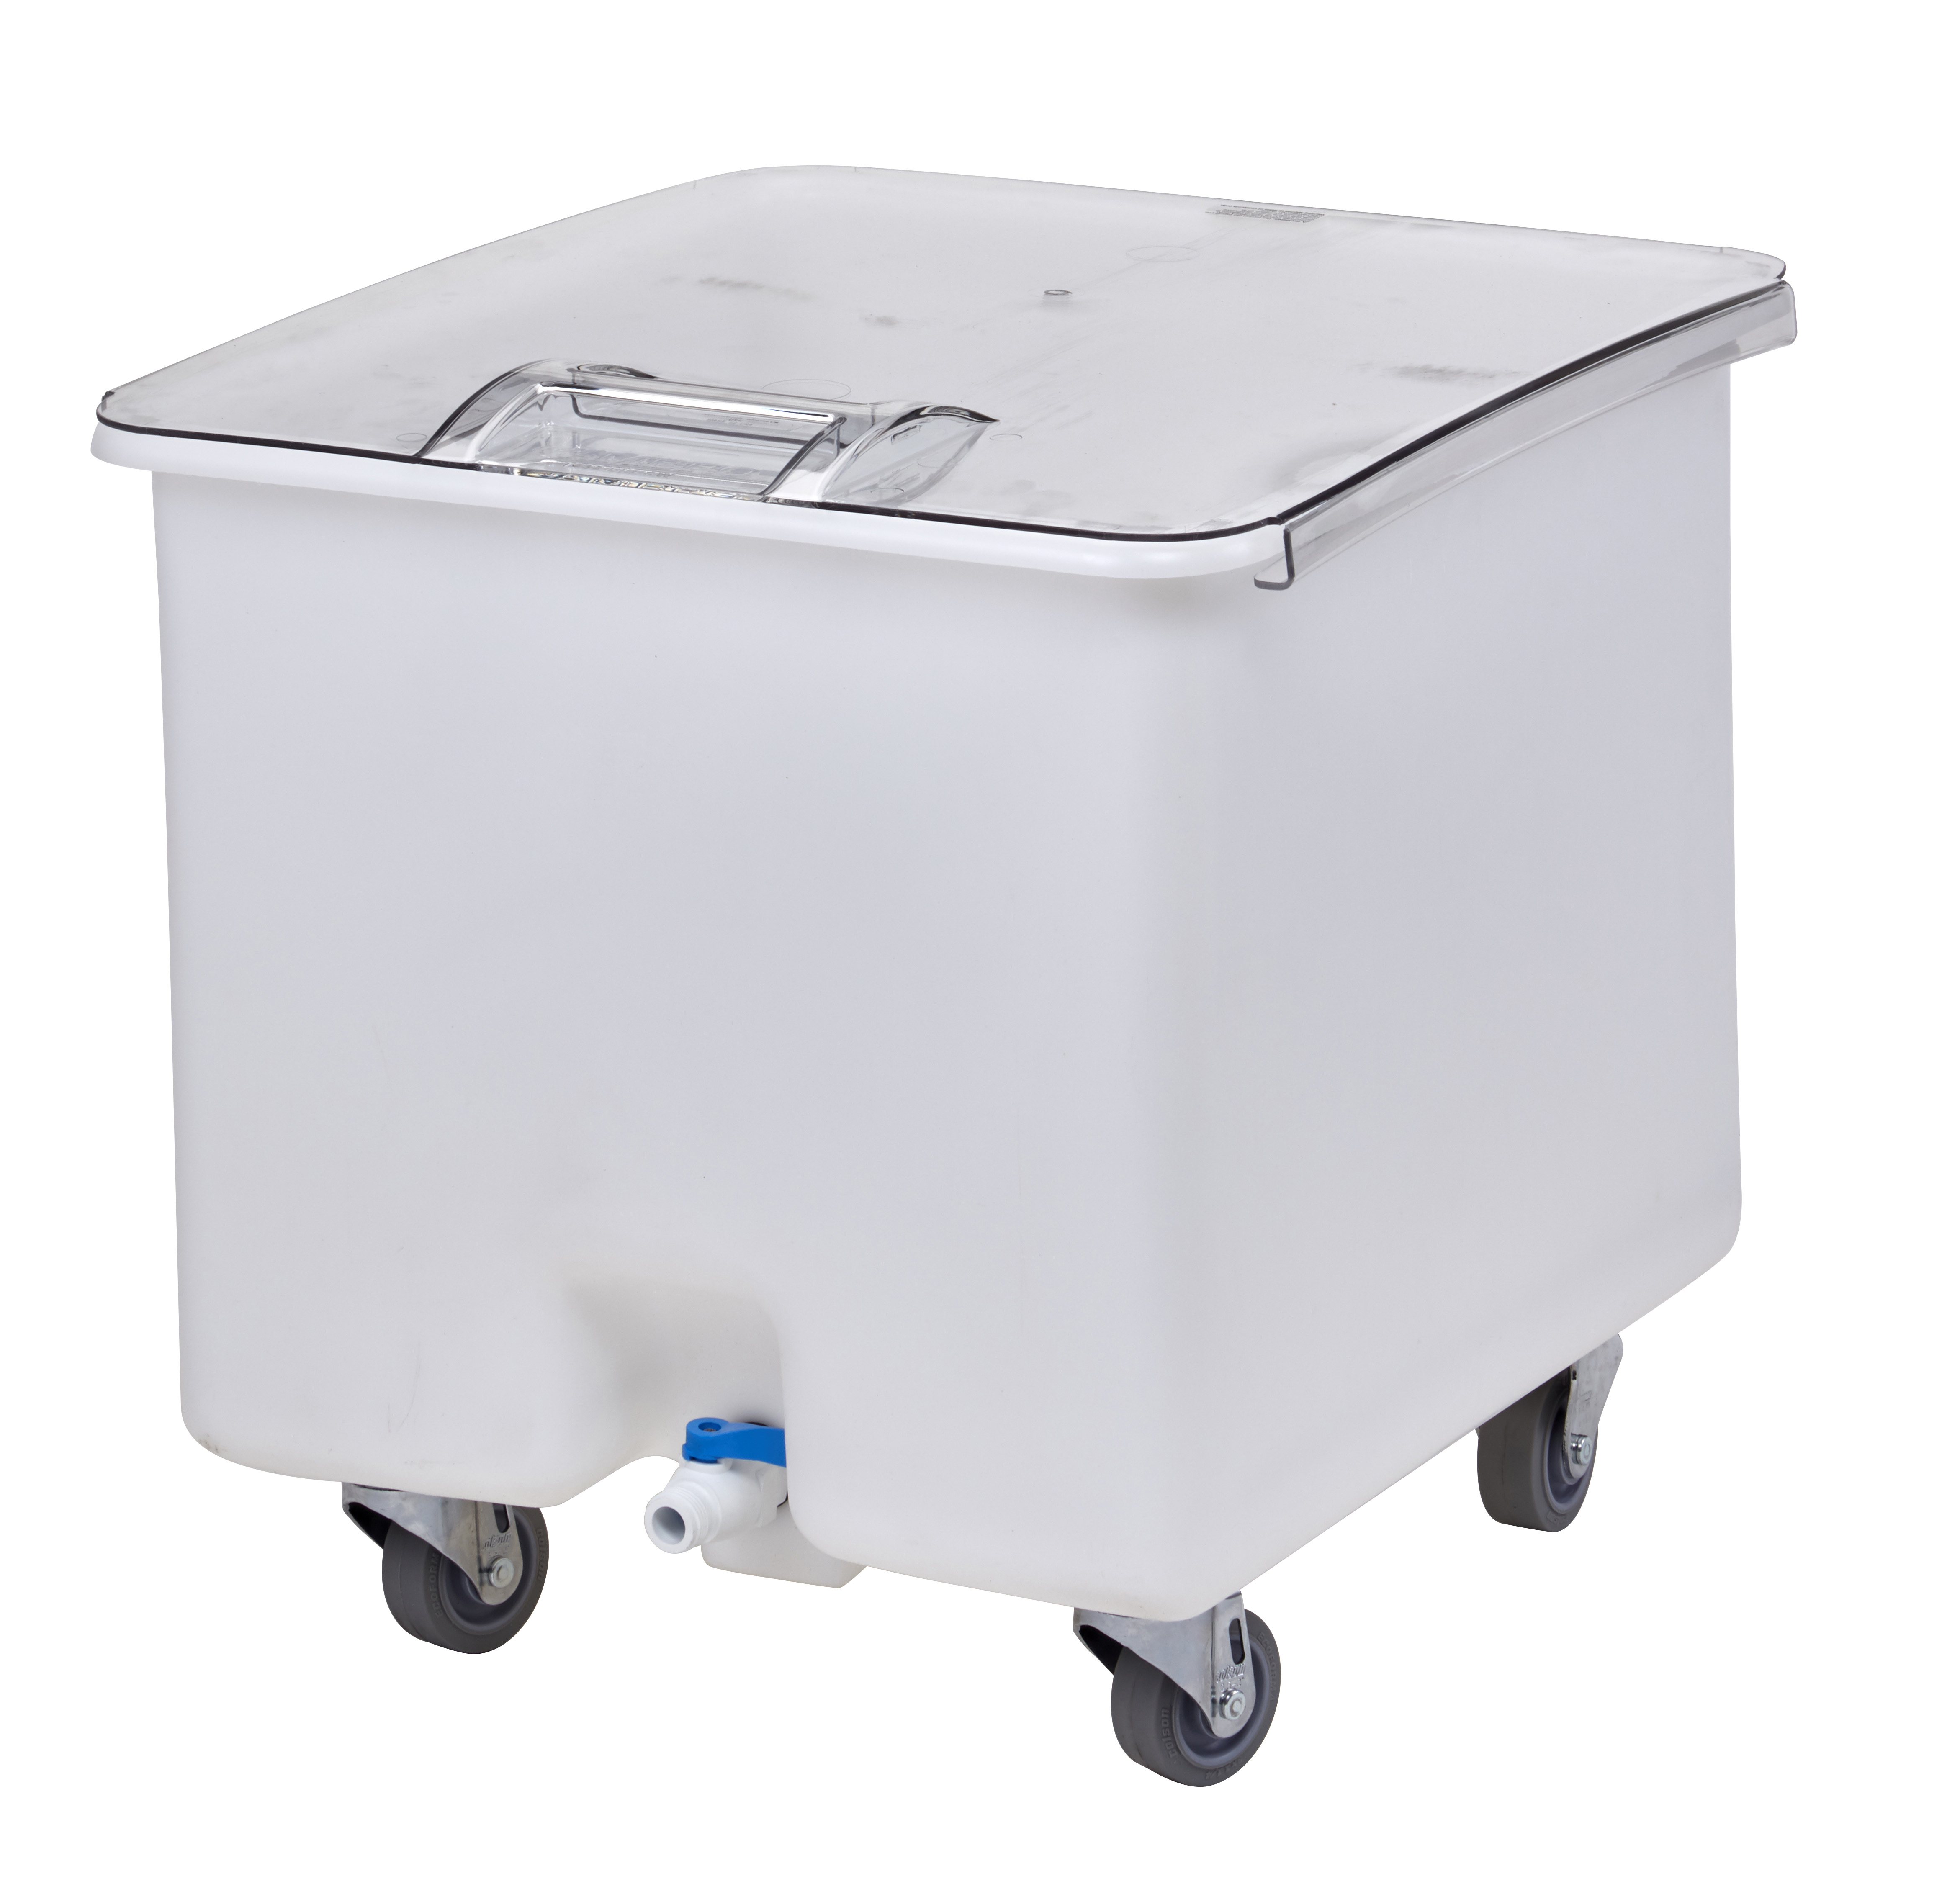 CC32148 Camcrisper White 32 Gal. Ingredient Bin